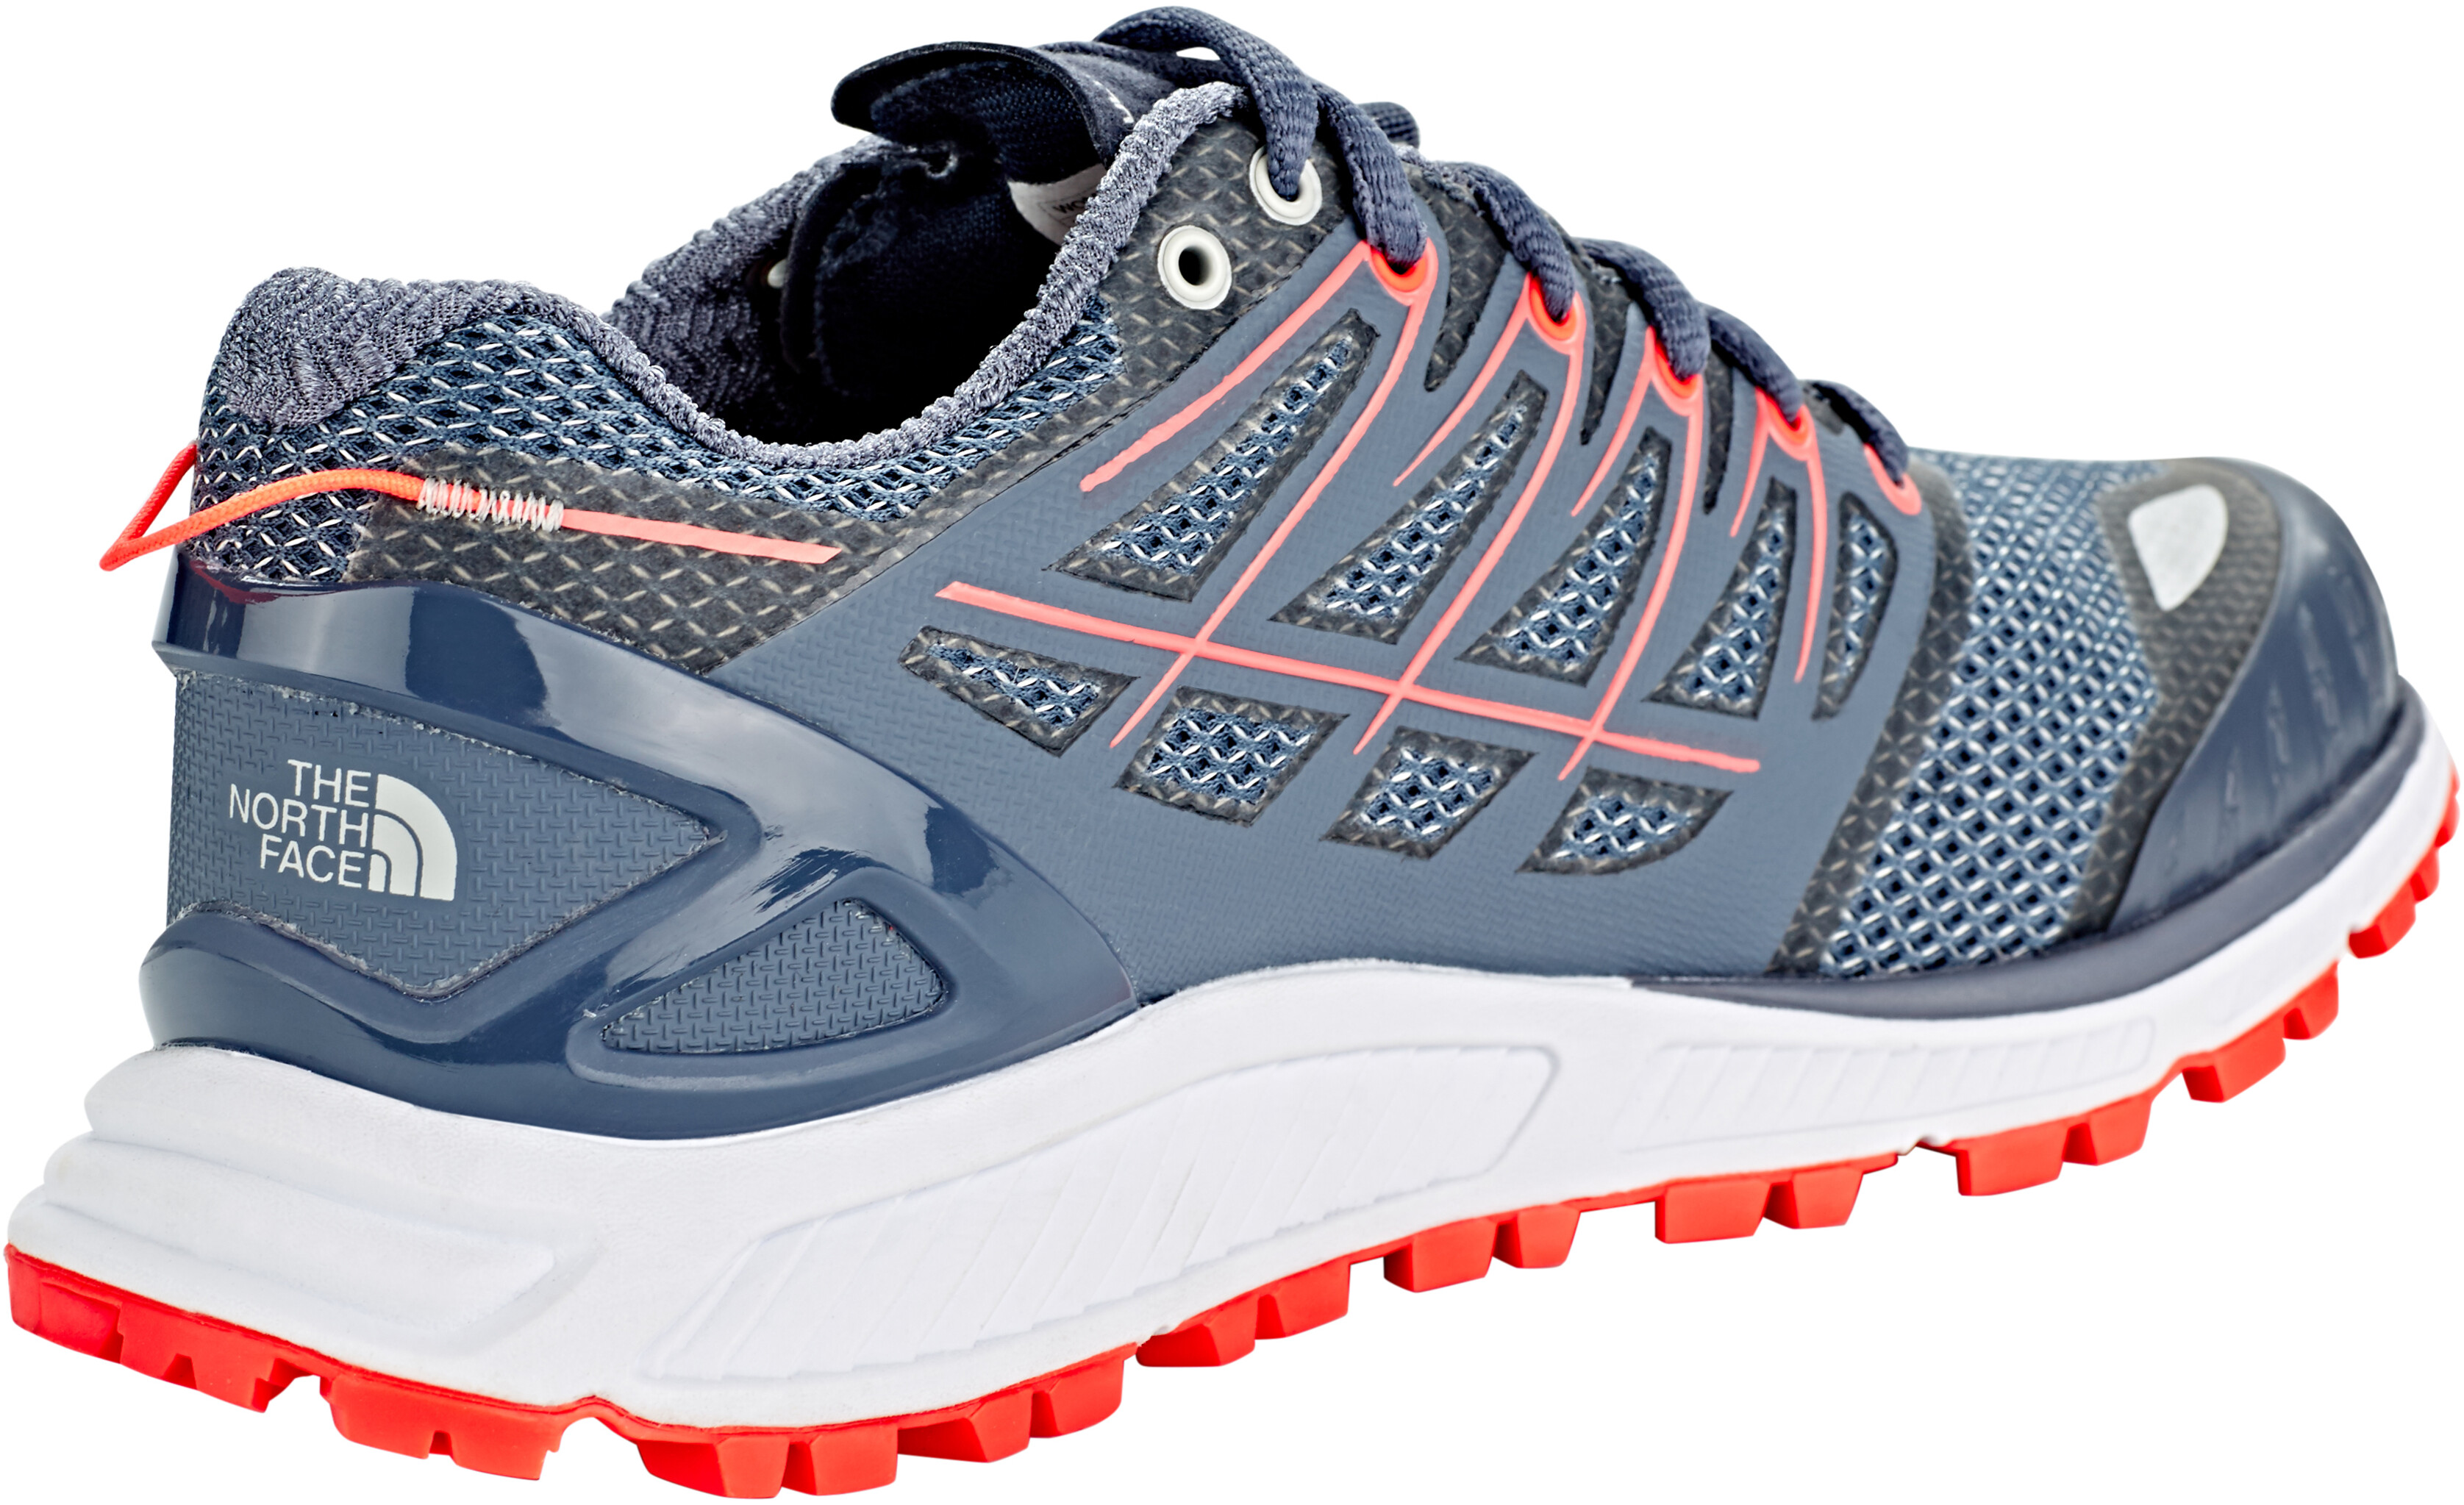 on sale 68f8c f932b The North Face Ultra Endurance II GTX Scarpe Donna, grisaille grey/fiery  coral